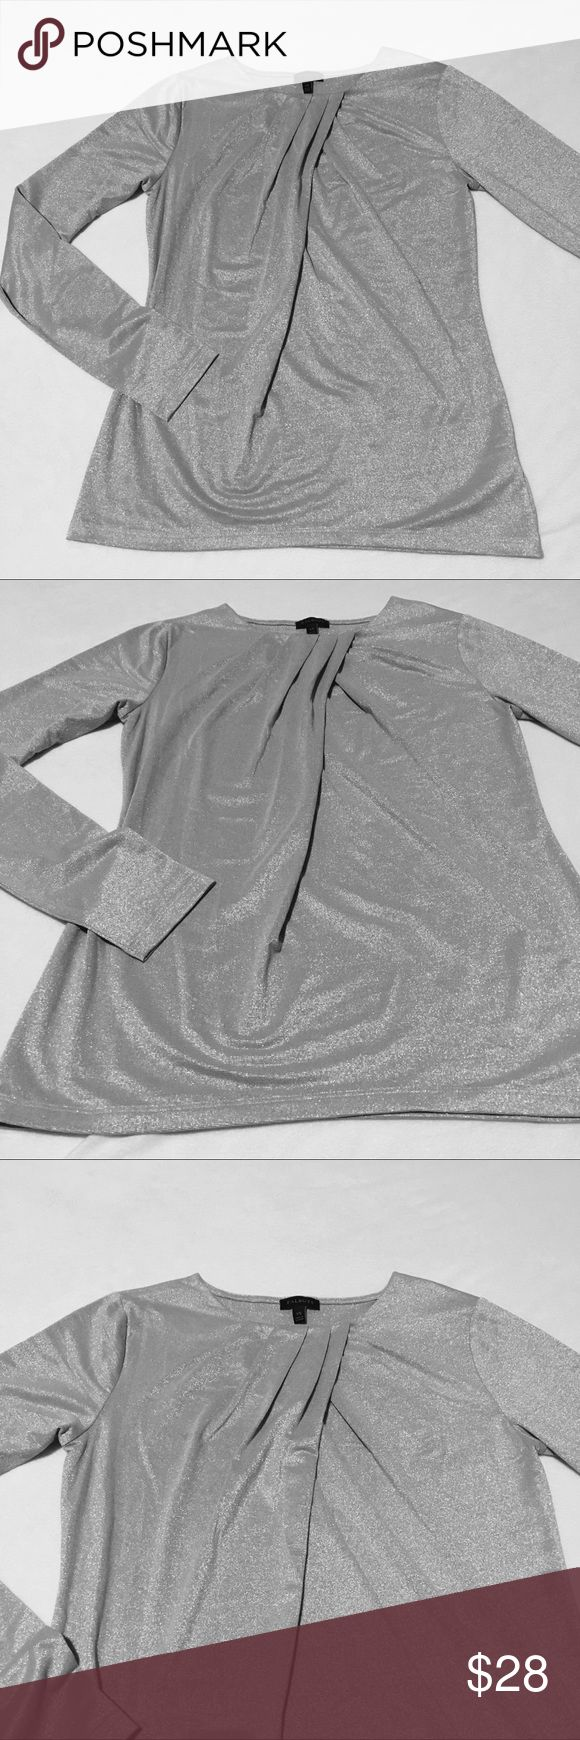 ✨NWOT✨Talbots Shimmery Silver Blouse This gorgeous top will make you shine! 🌟 Lightweight and drapes on body perfectly. Pretty detailing on front top. Pair this with black pants and you are perfect! Perfect condition! NWOT! Talbots Tops Blouses